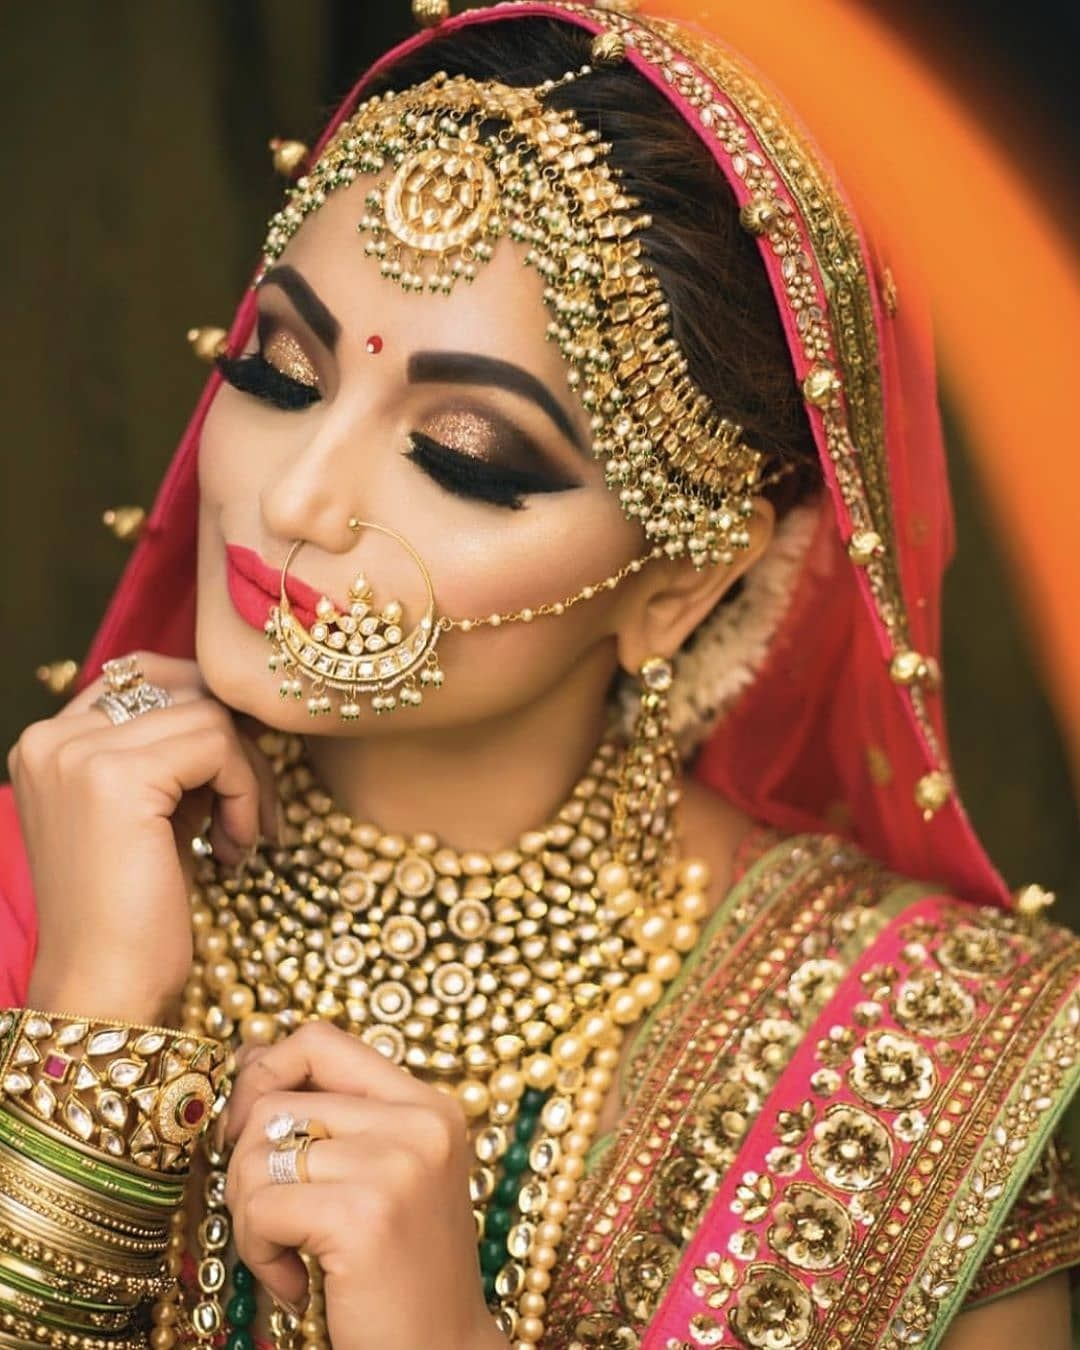 Indian Bridal Makeup Photos Pictures In 2020 Bridal Makeup Images Indian Bridal Makeup Asian Bridal Makeup